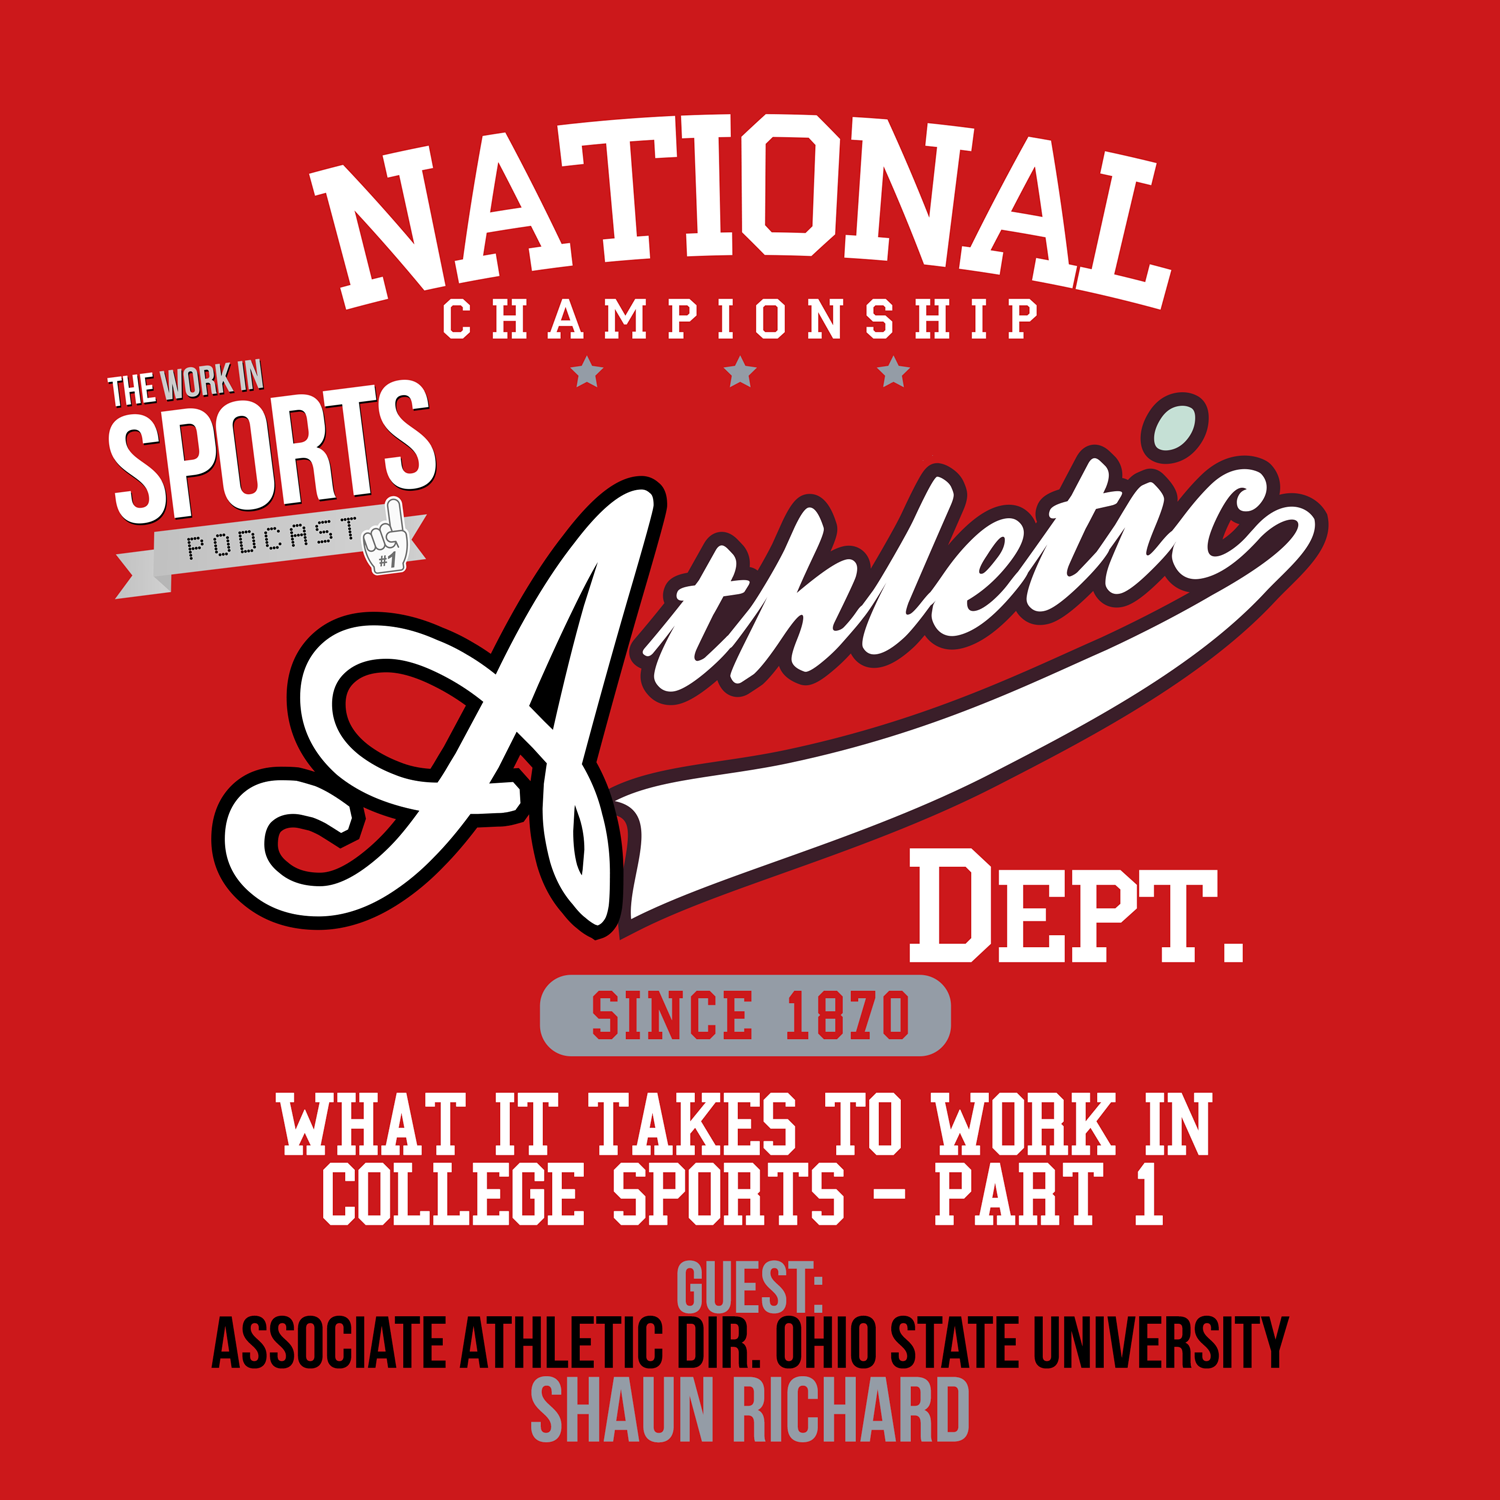 what it takes to work in college sports